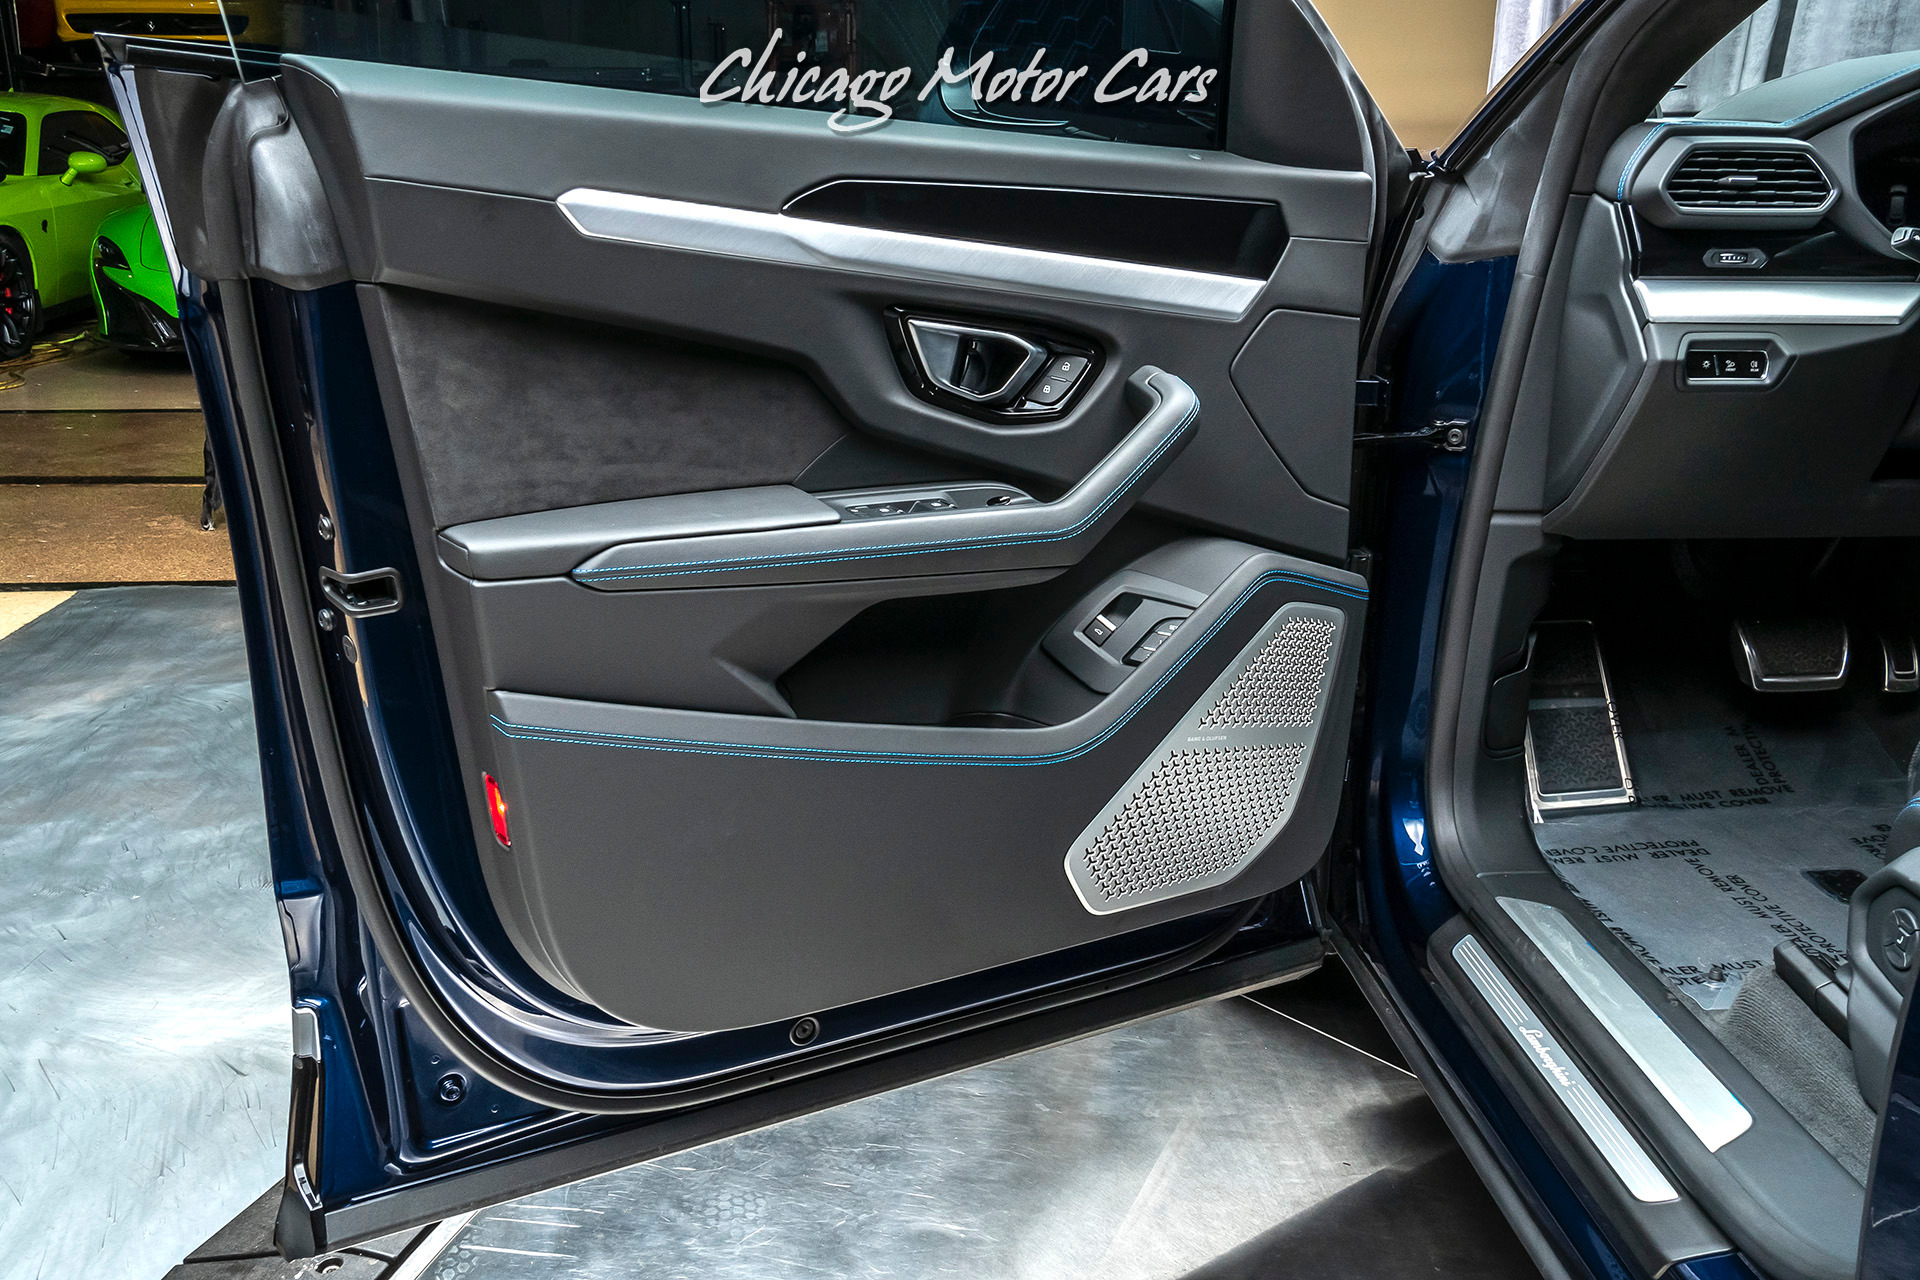 Used 2019 Lamborghini Urus Suv Msrp 241k Rear Seat Entertainment For Sale Special Pricing Chicago Motor Cars Stock 16234a